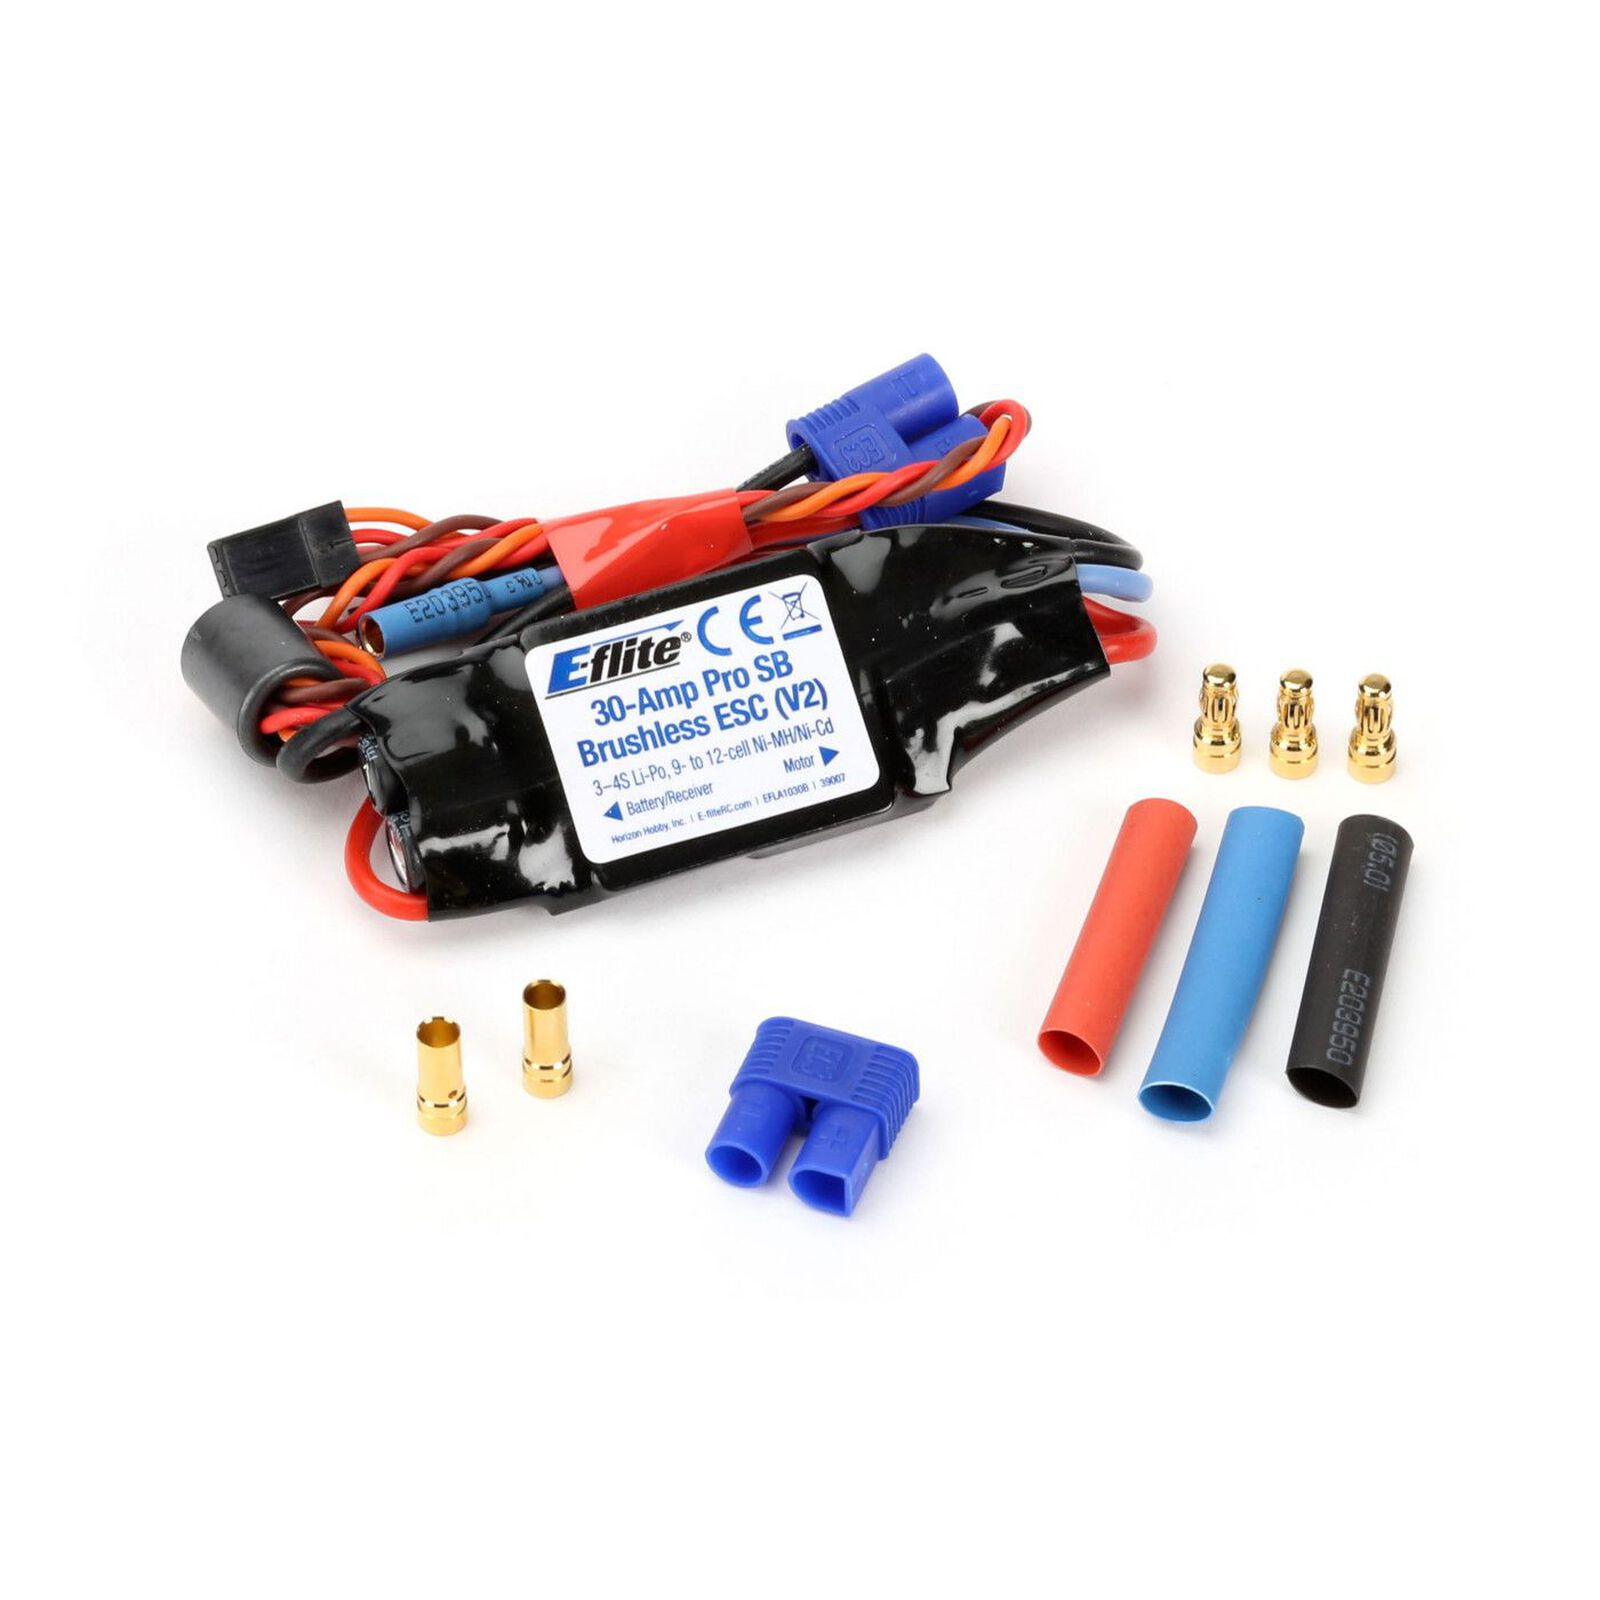 30-Amp Pro Switch-Mode BEC Brushless ESC V2: EC3